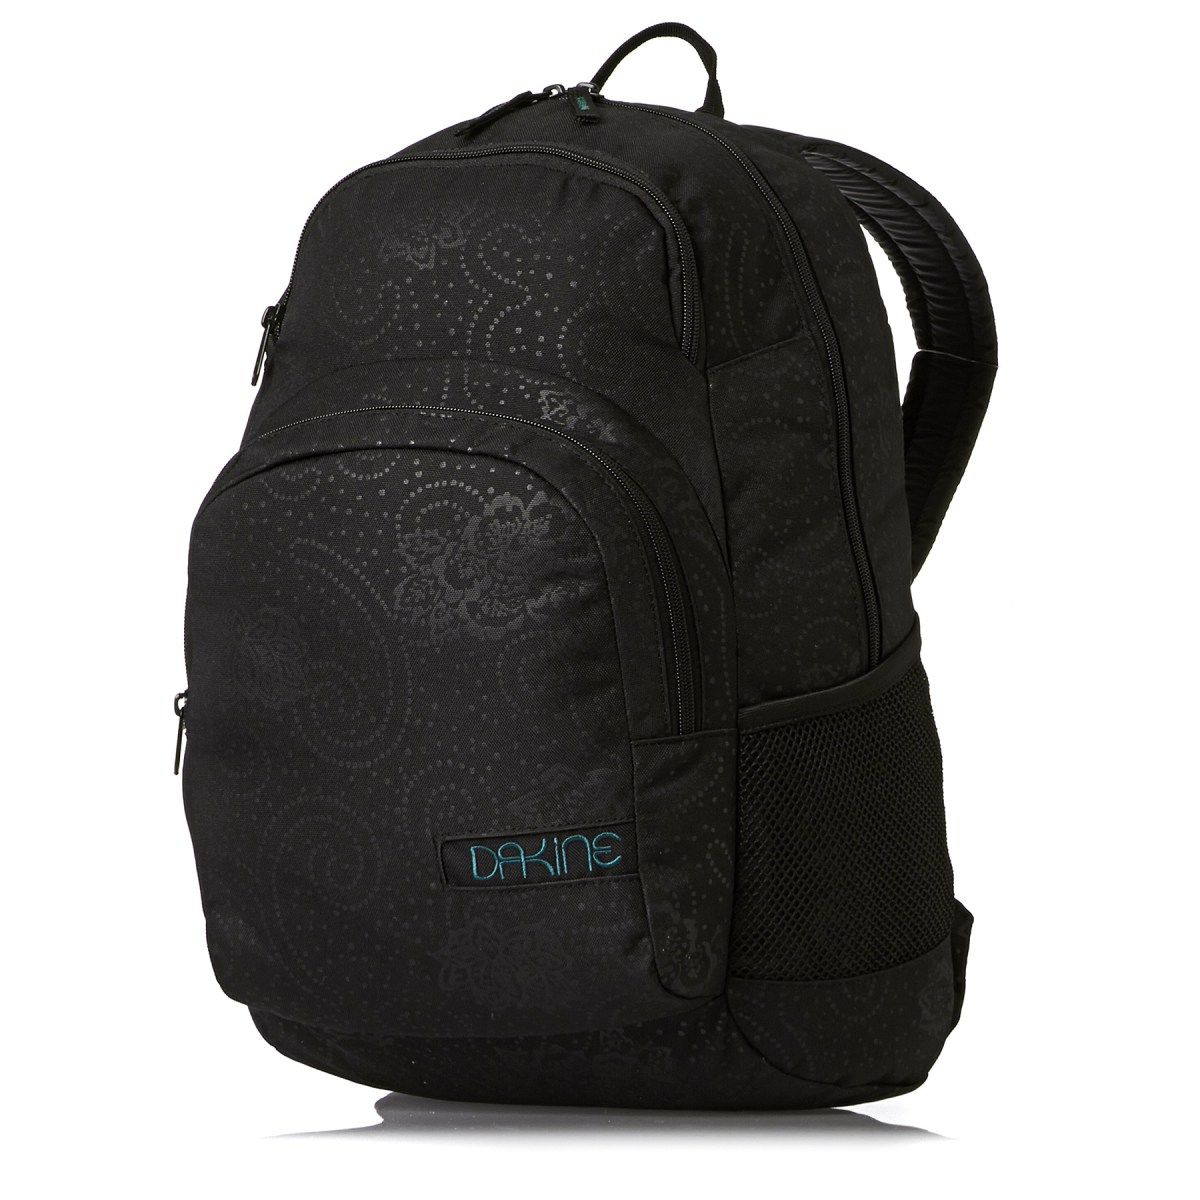 c92d6446b40f Women s Dakine Backpacks - Dakine Hana 26L Backpack - Ellie ...